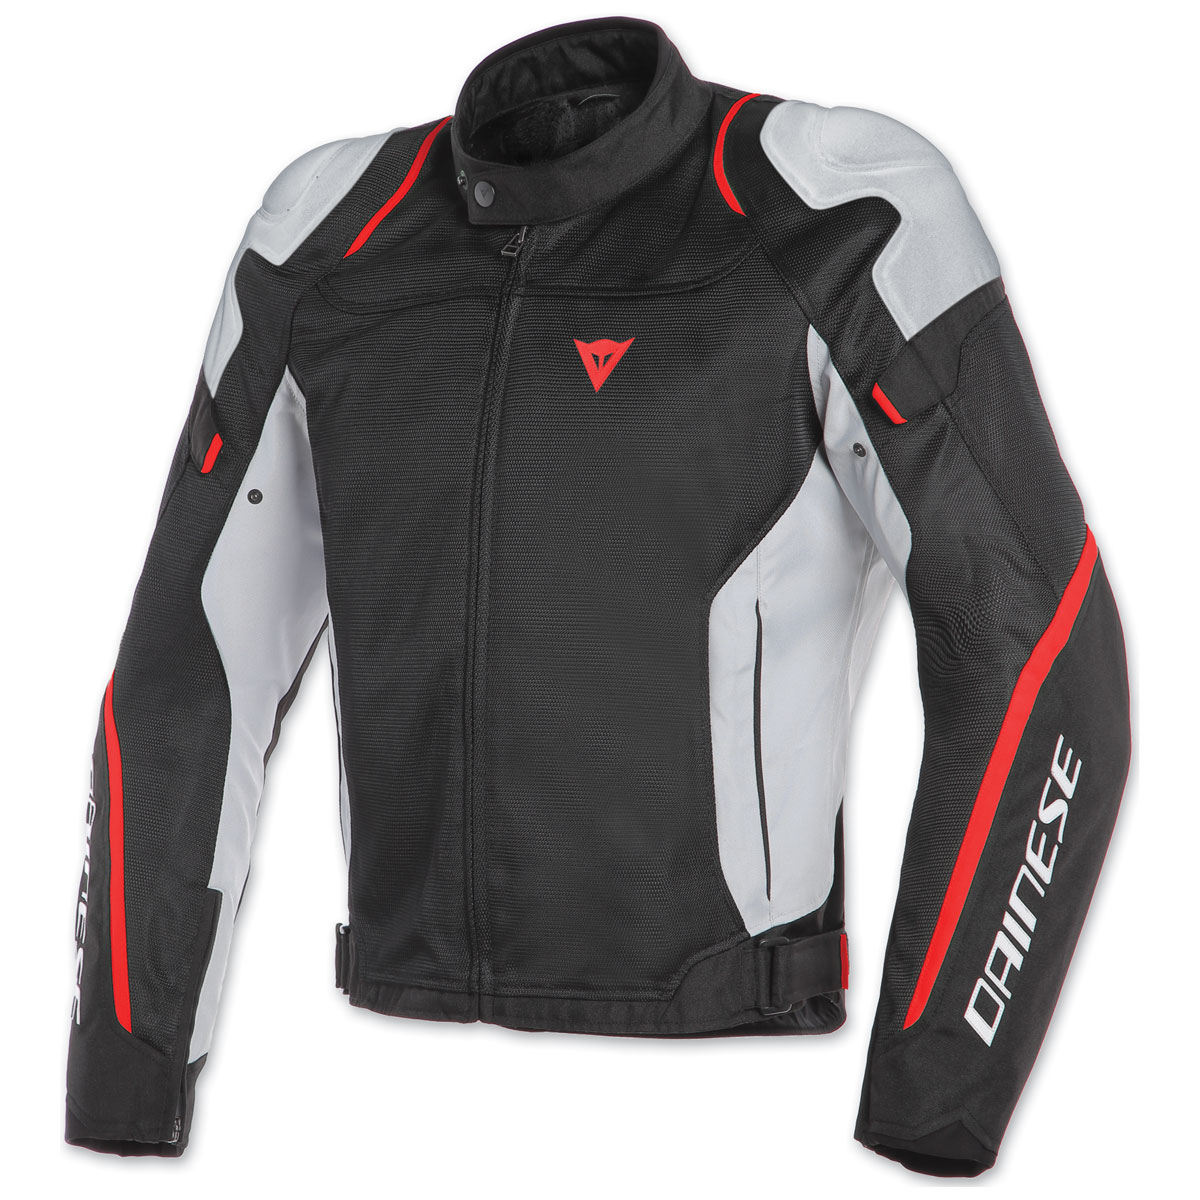 Dainese Men's Air Master Black/Glacier-Gray/Fluo-Red Textile Jacket